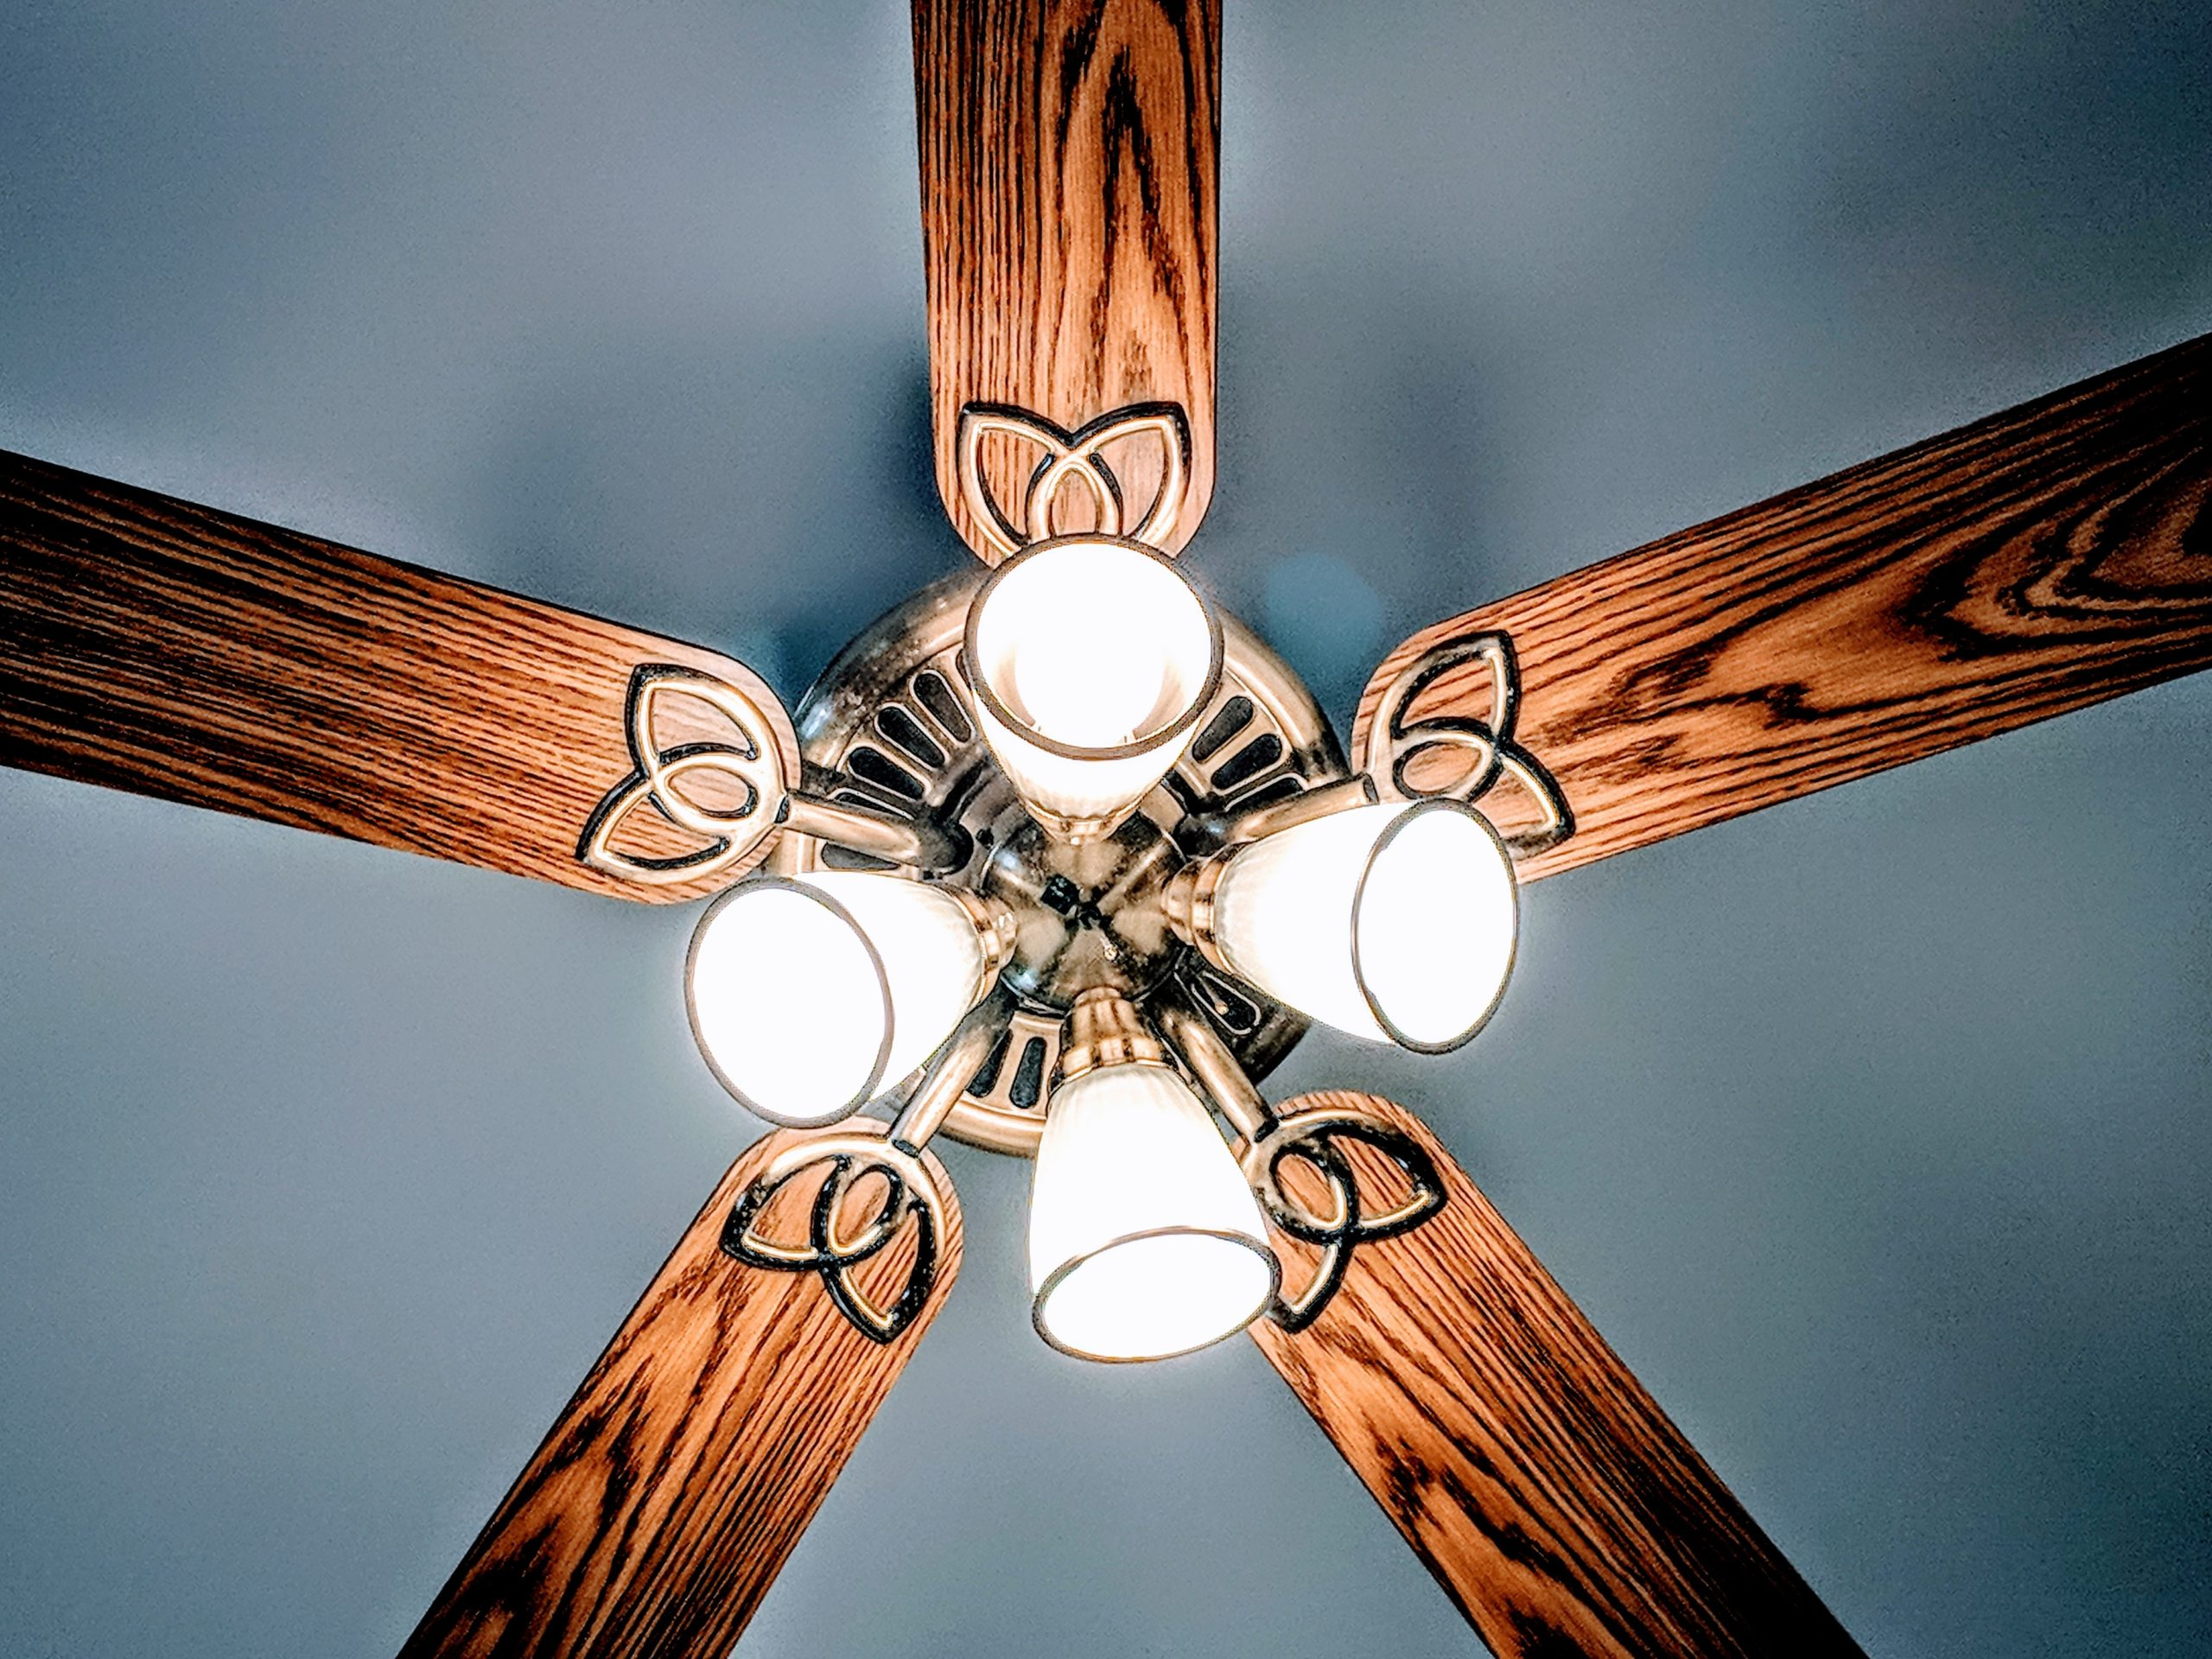 electrical installation service for ceiling fan Clarksville